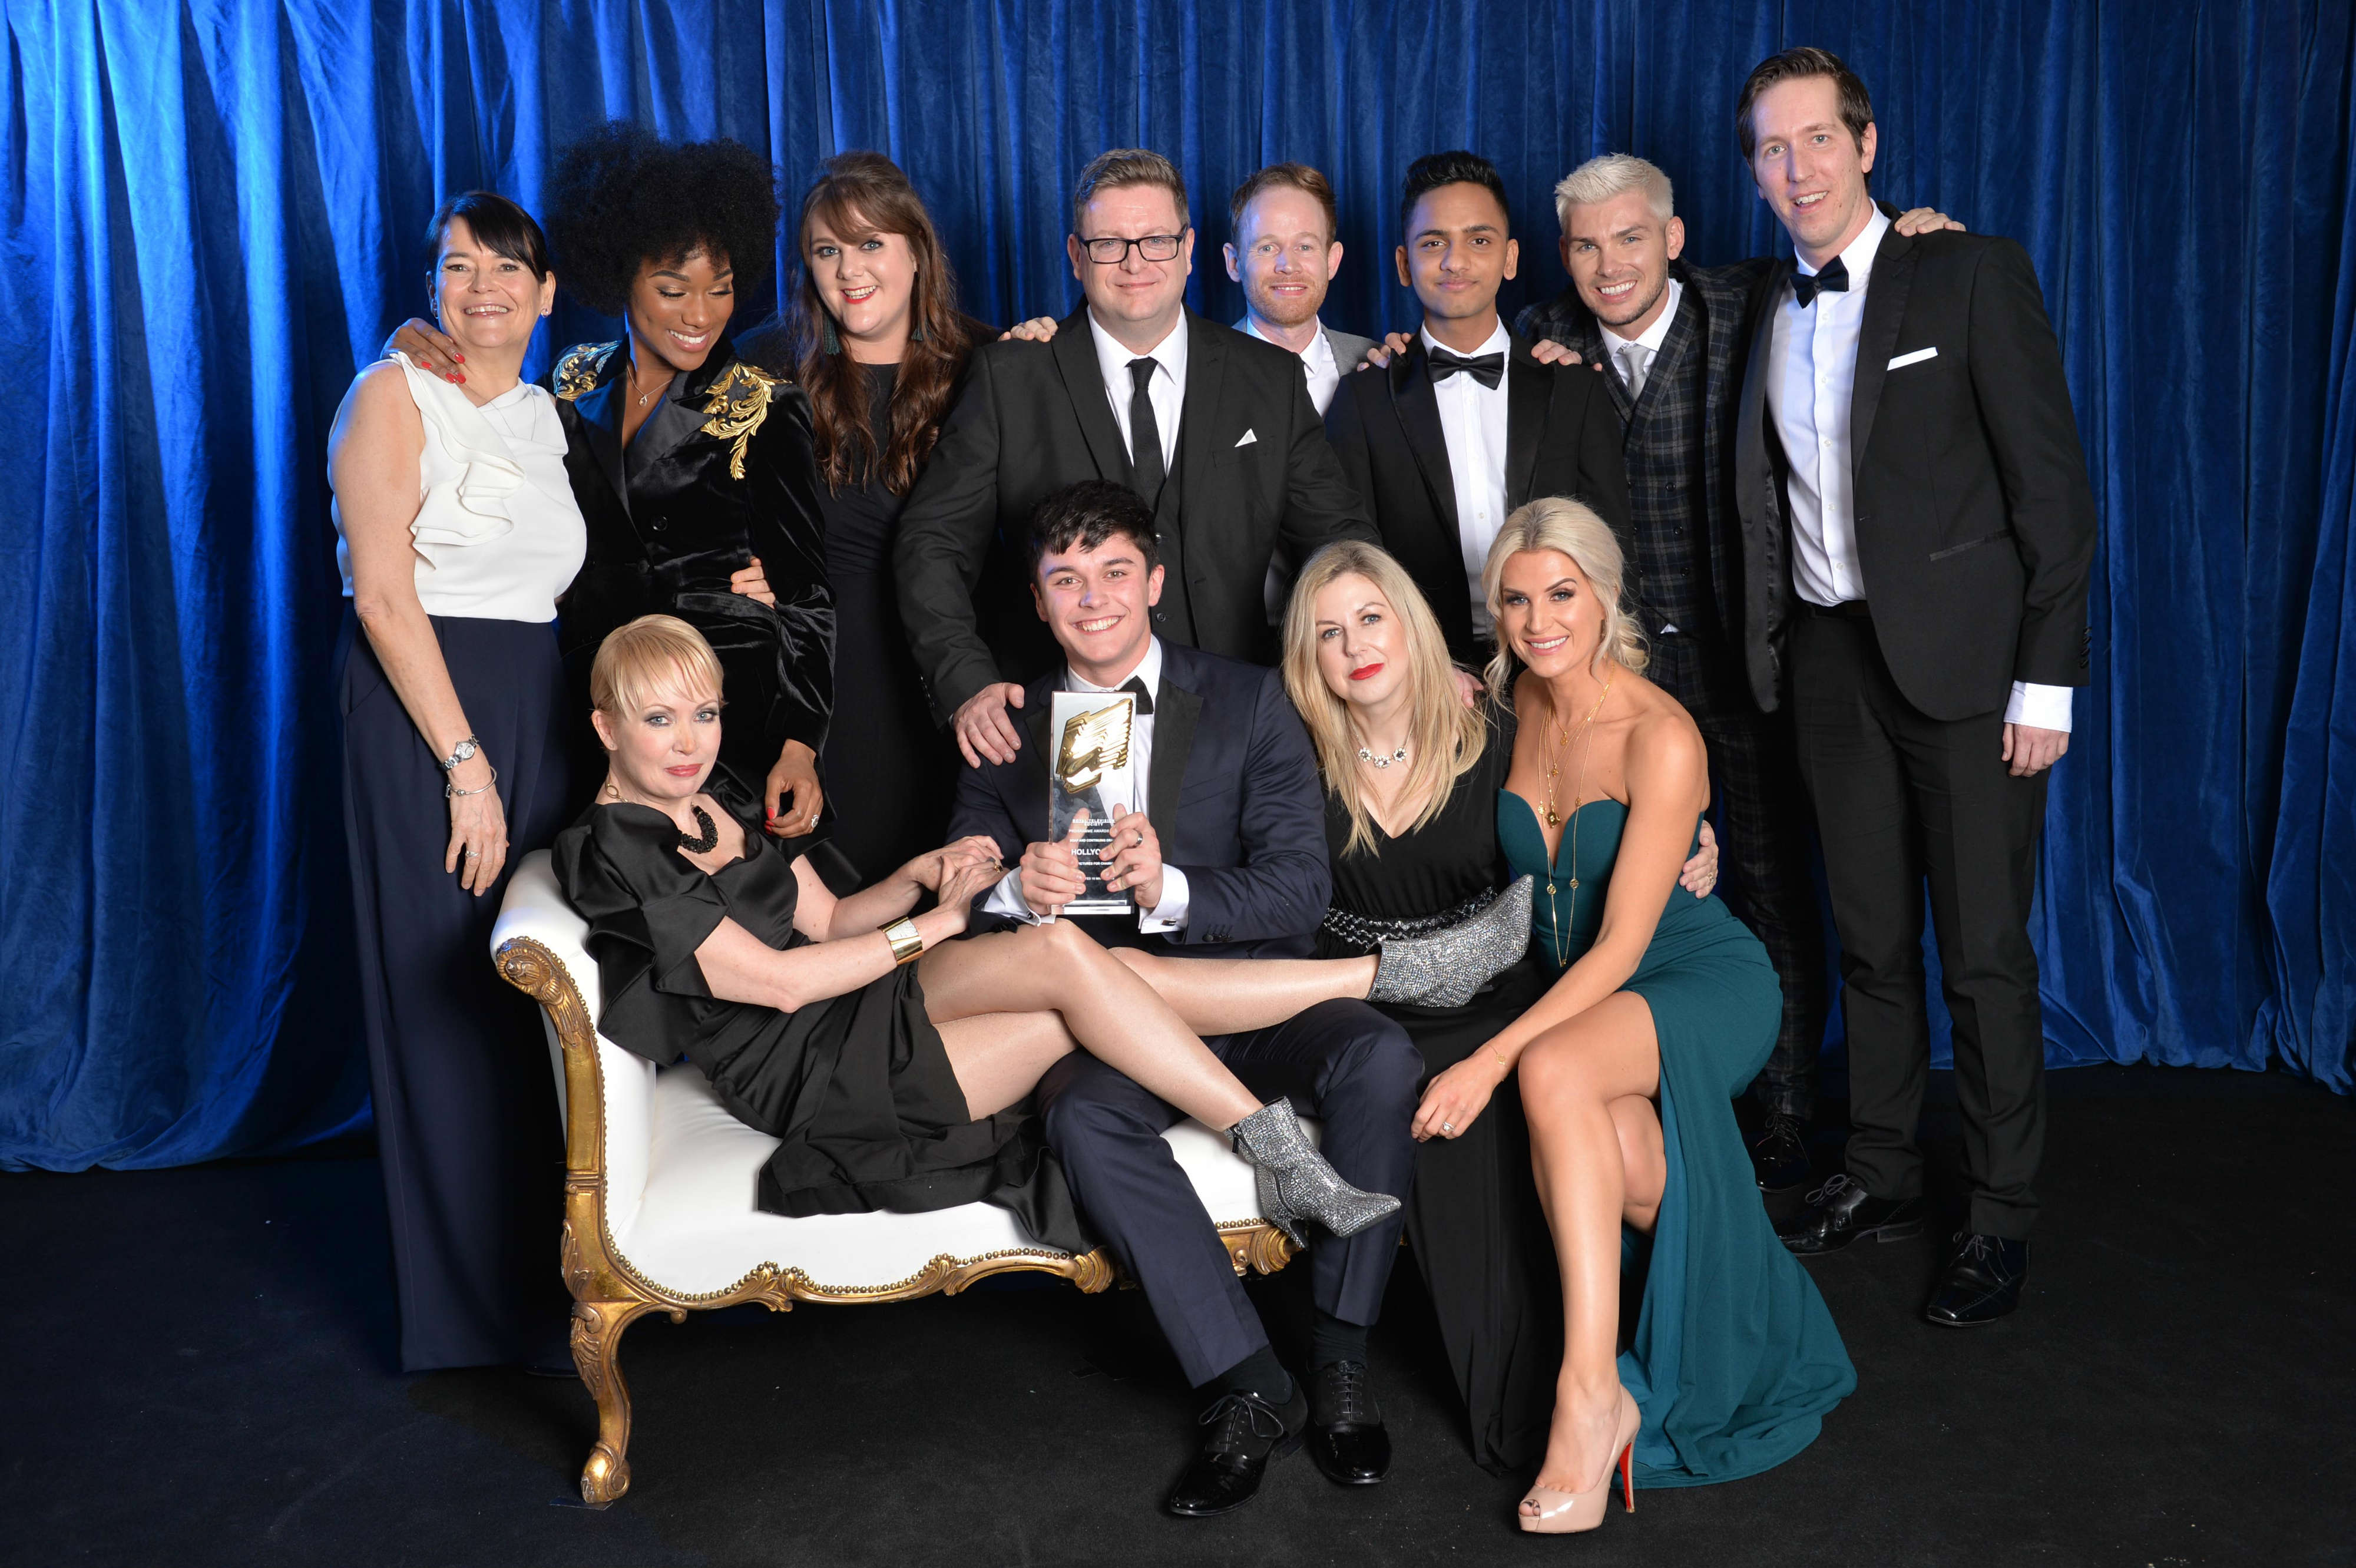 Hollyoaks Wins Best Soap at the Royal Television Society Awards